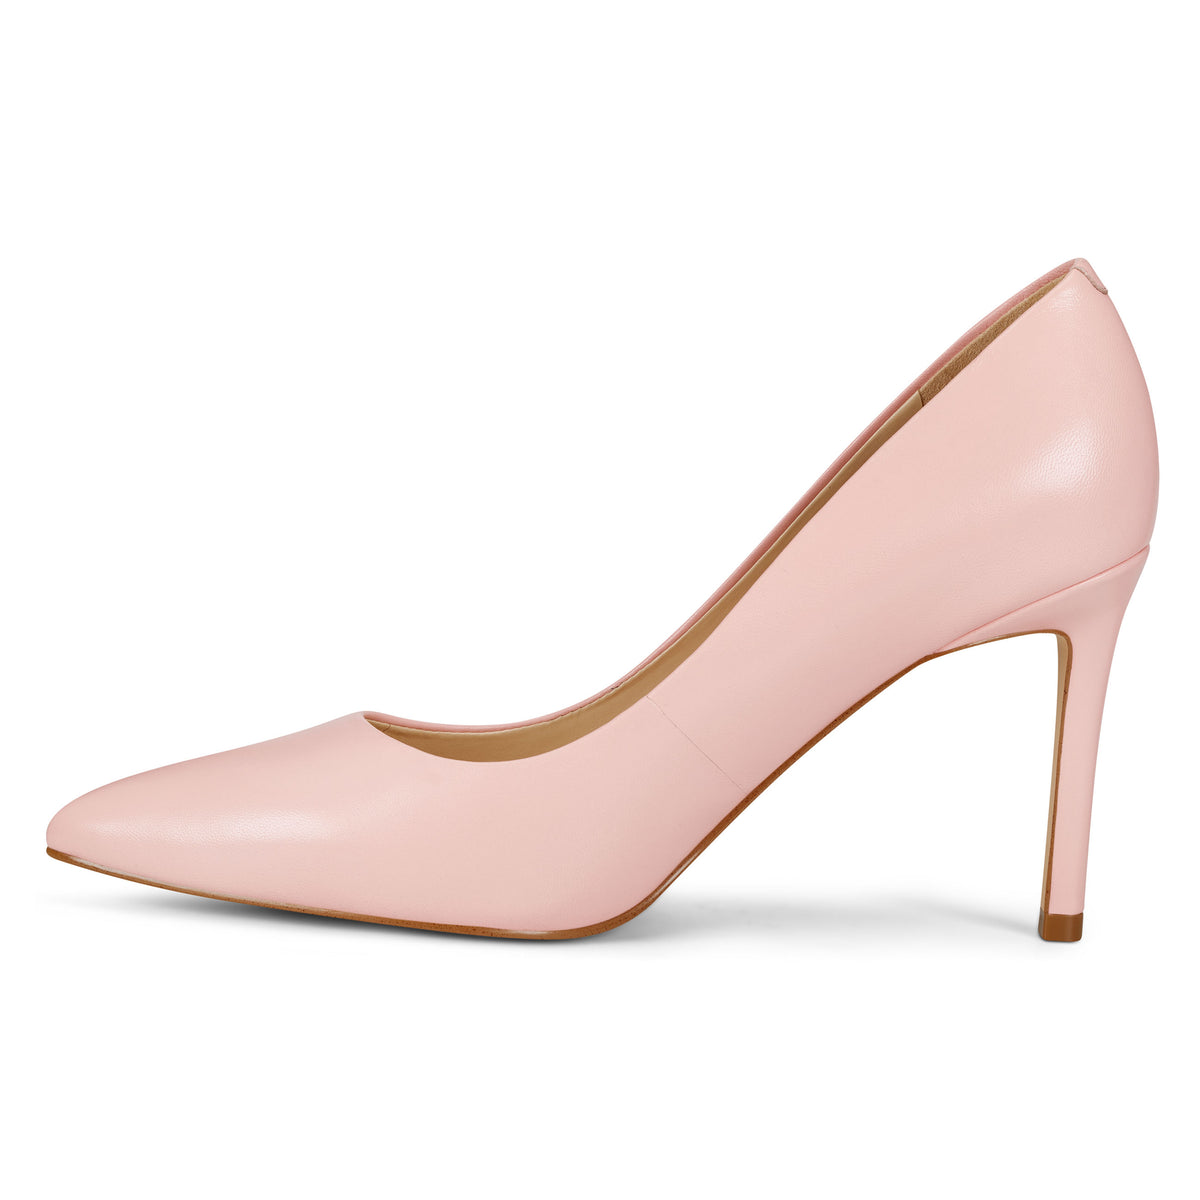 ezra-pointy-toe-pumps-in-pink-leather